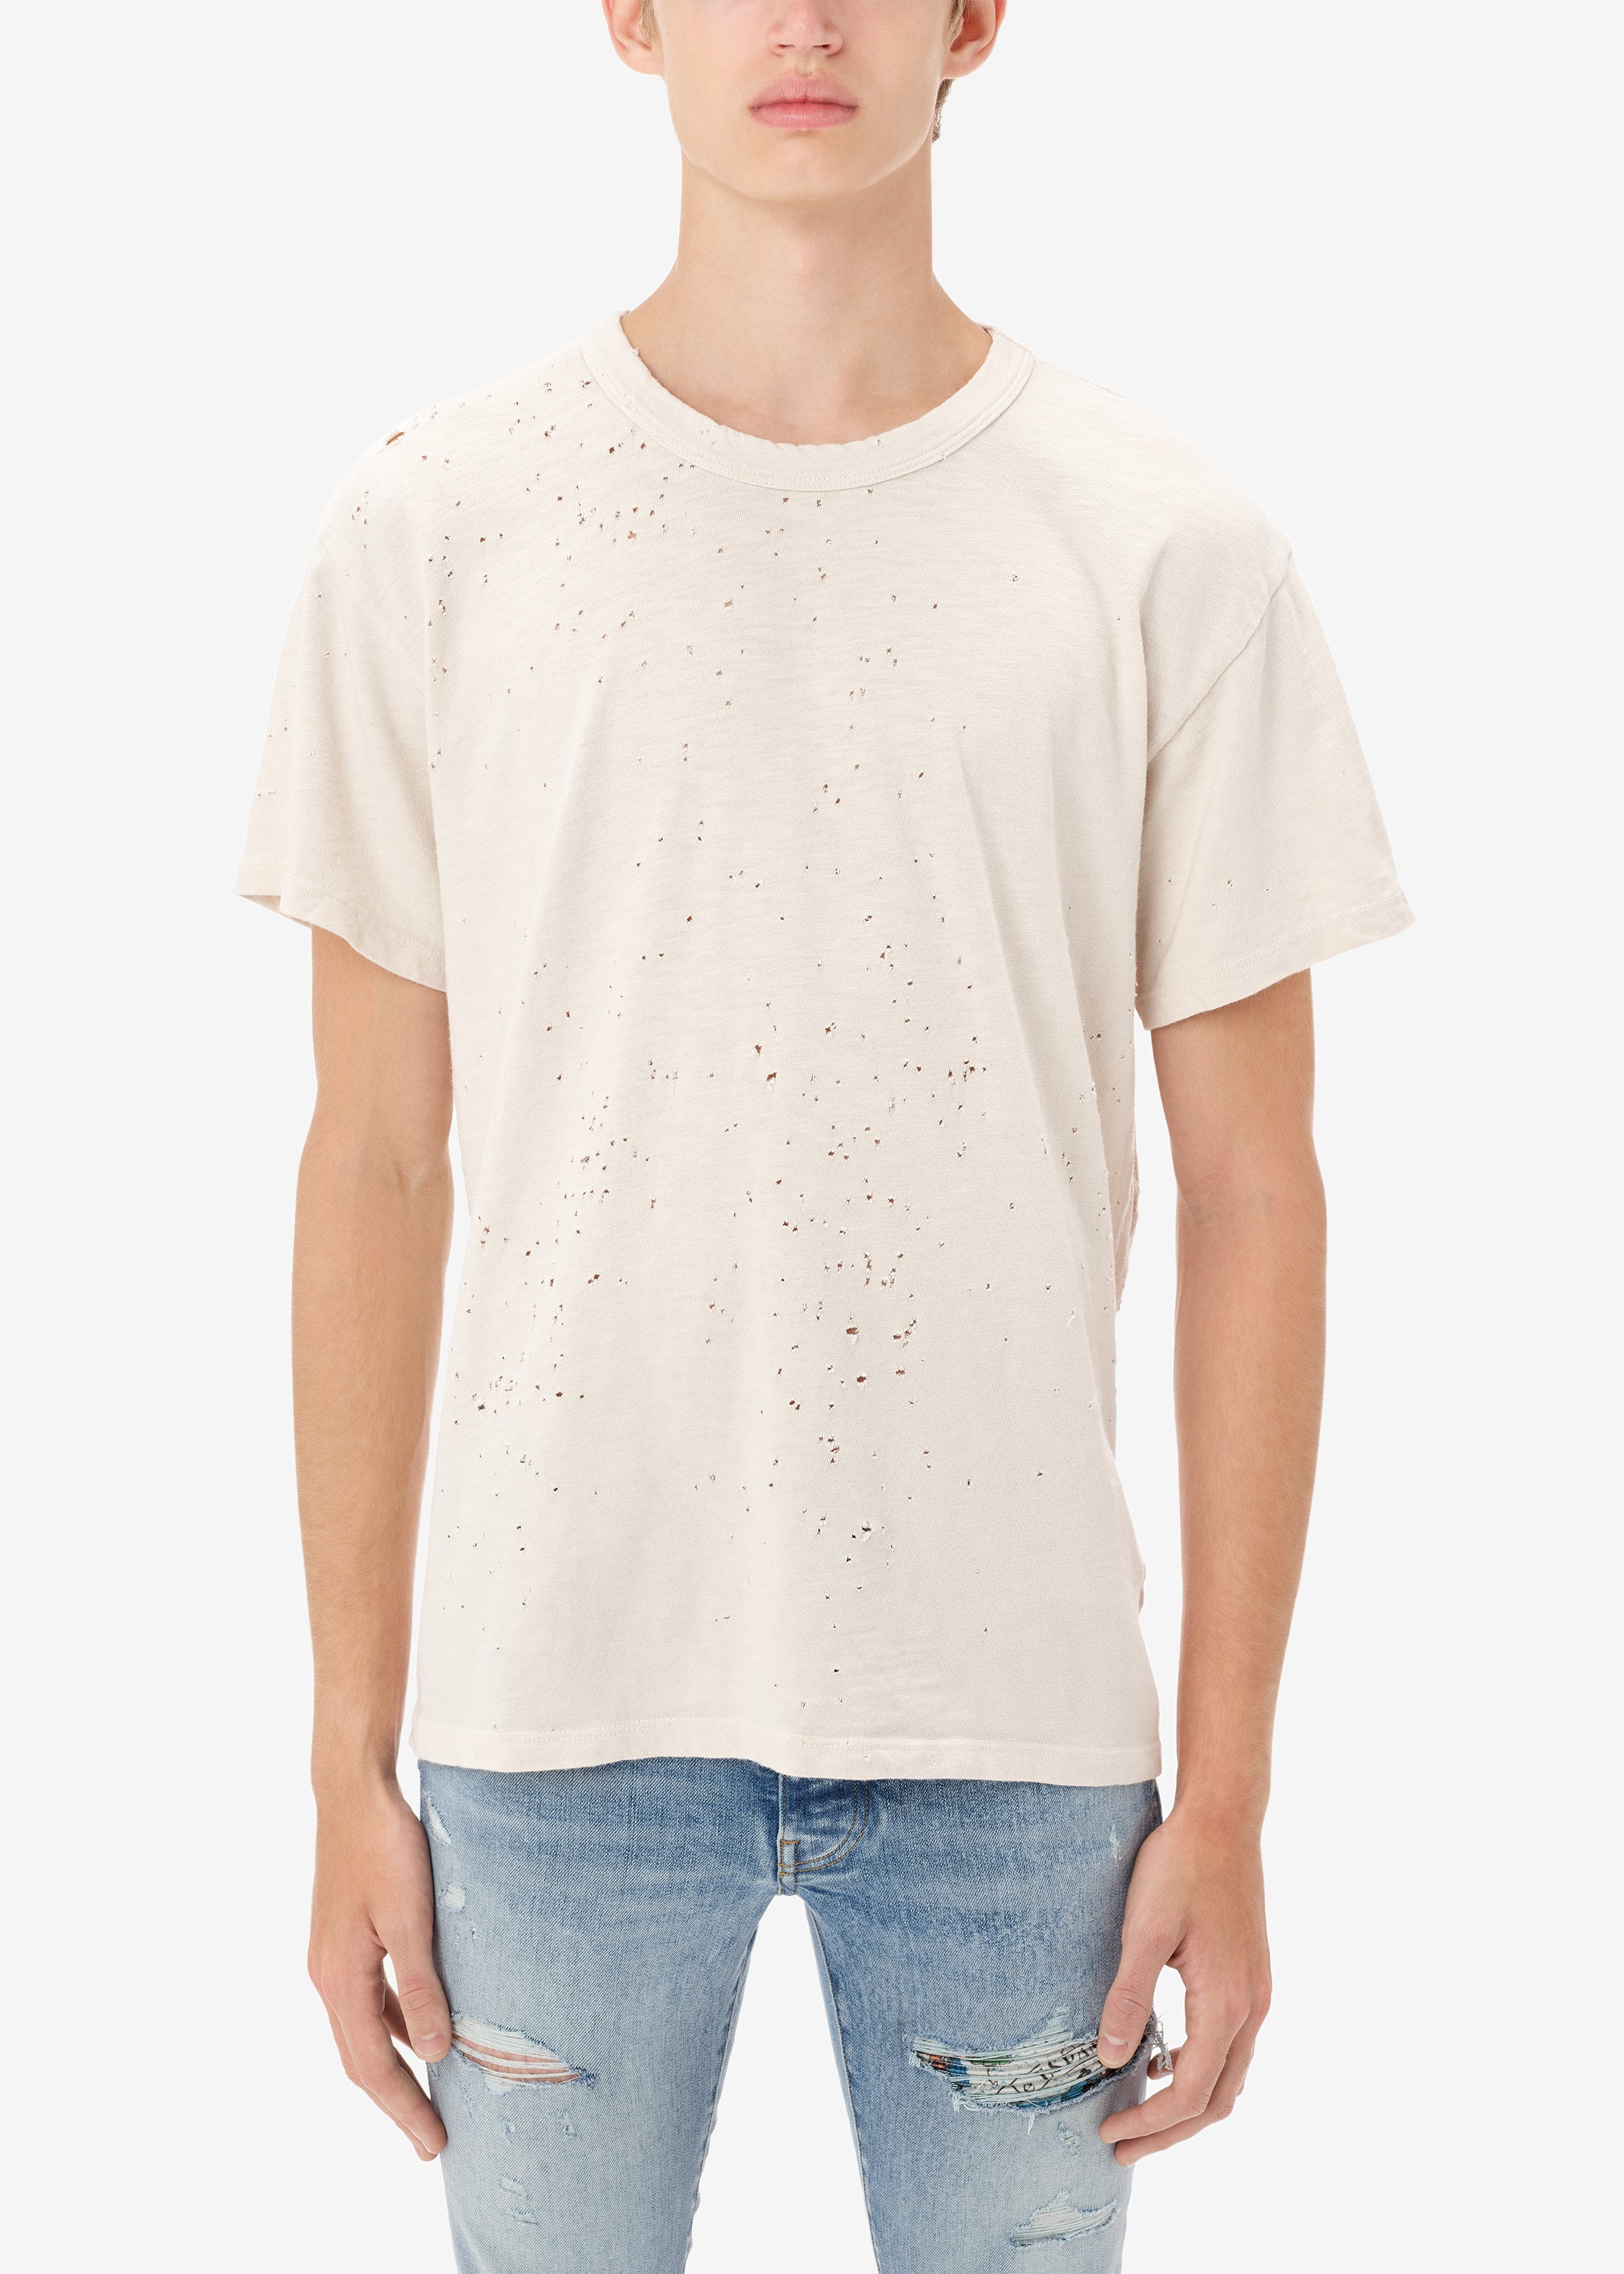 exclusive-shotgun-tee-alabaster-image-1